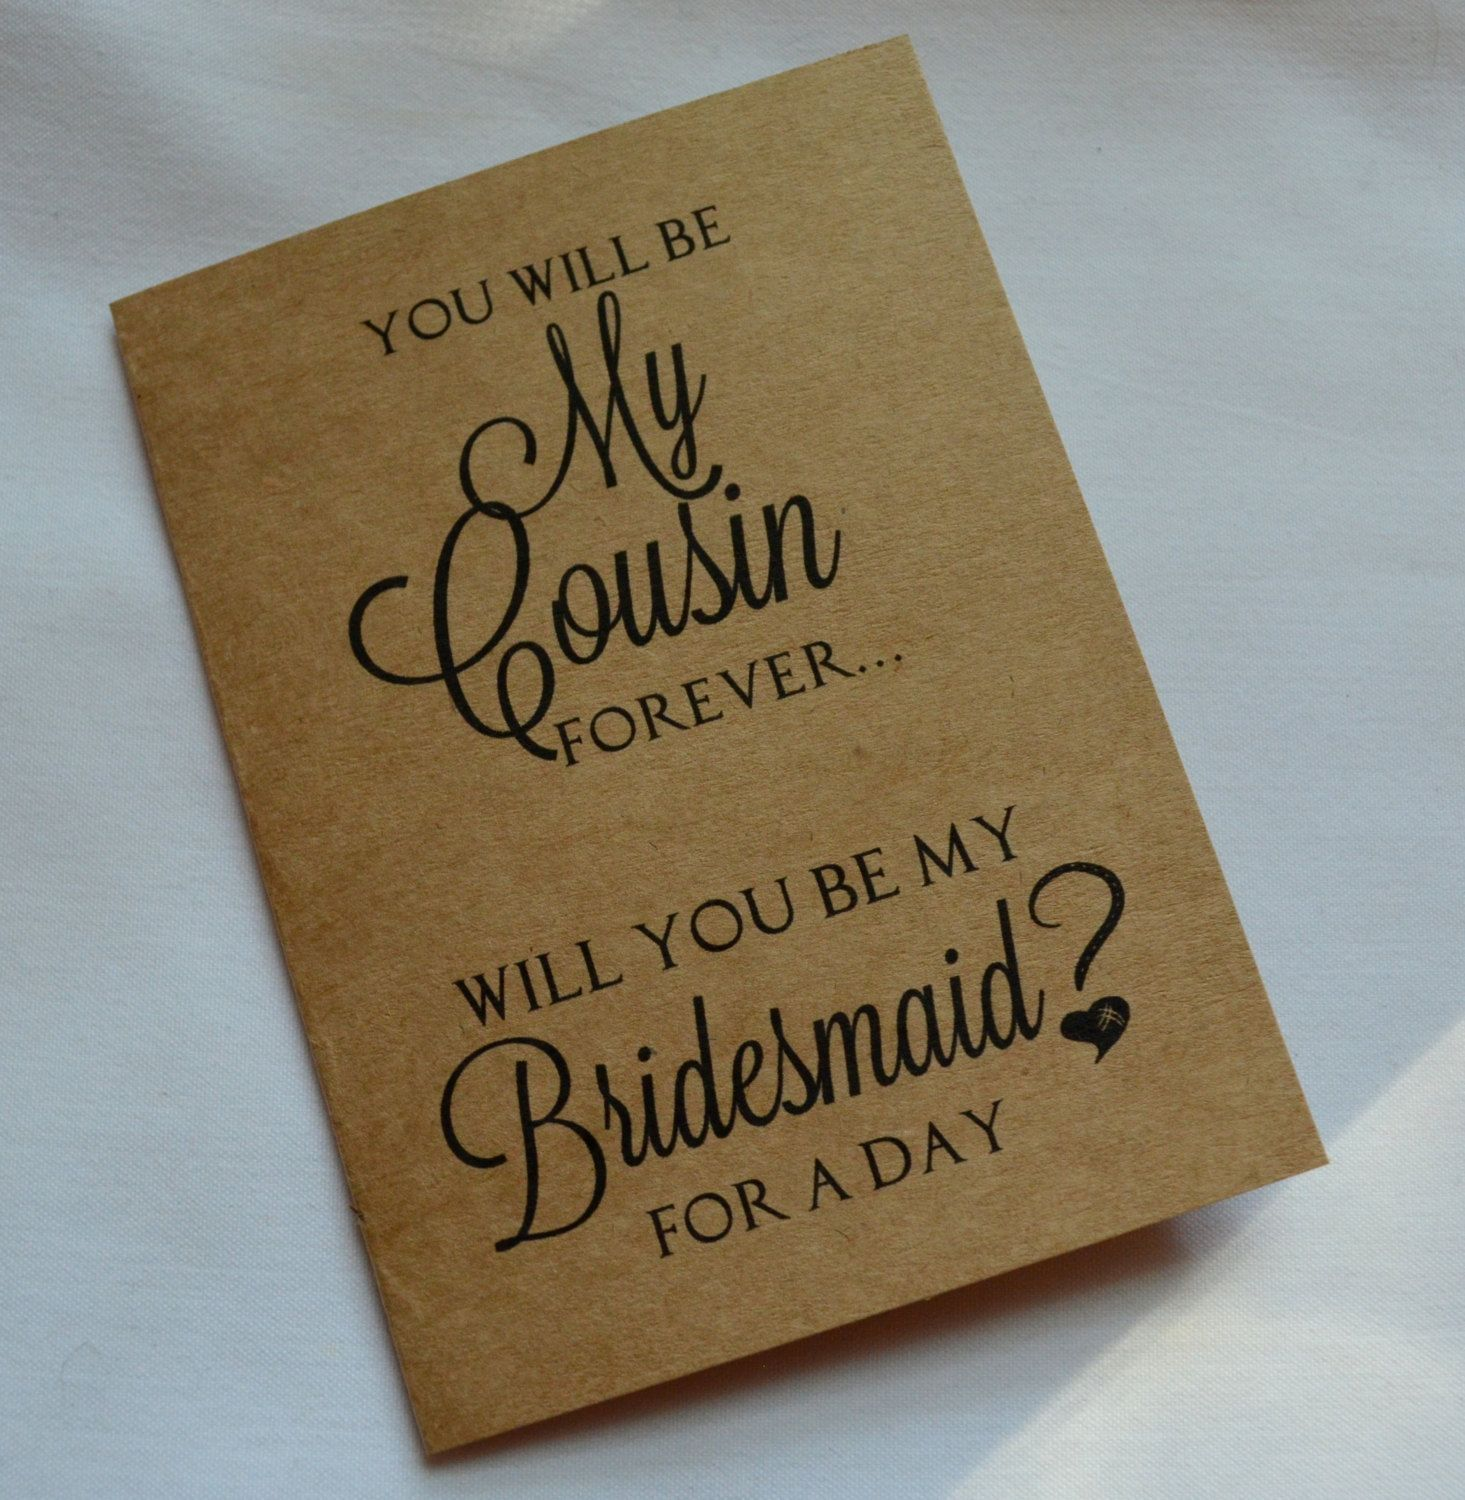 we are cousins connected by heart Will you be my: Maid of Honor Bridesmaid Ask Card Matron of Honor Cousin Bridesmaid Proposal Scratch Off GOLD HEART Floral Side by side or miles apart